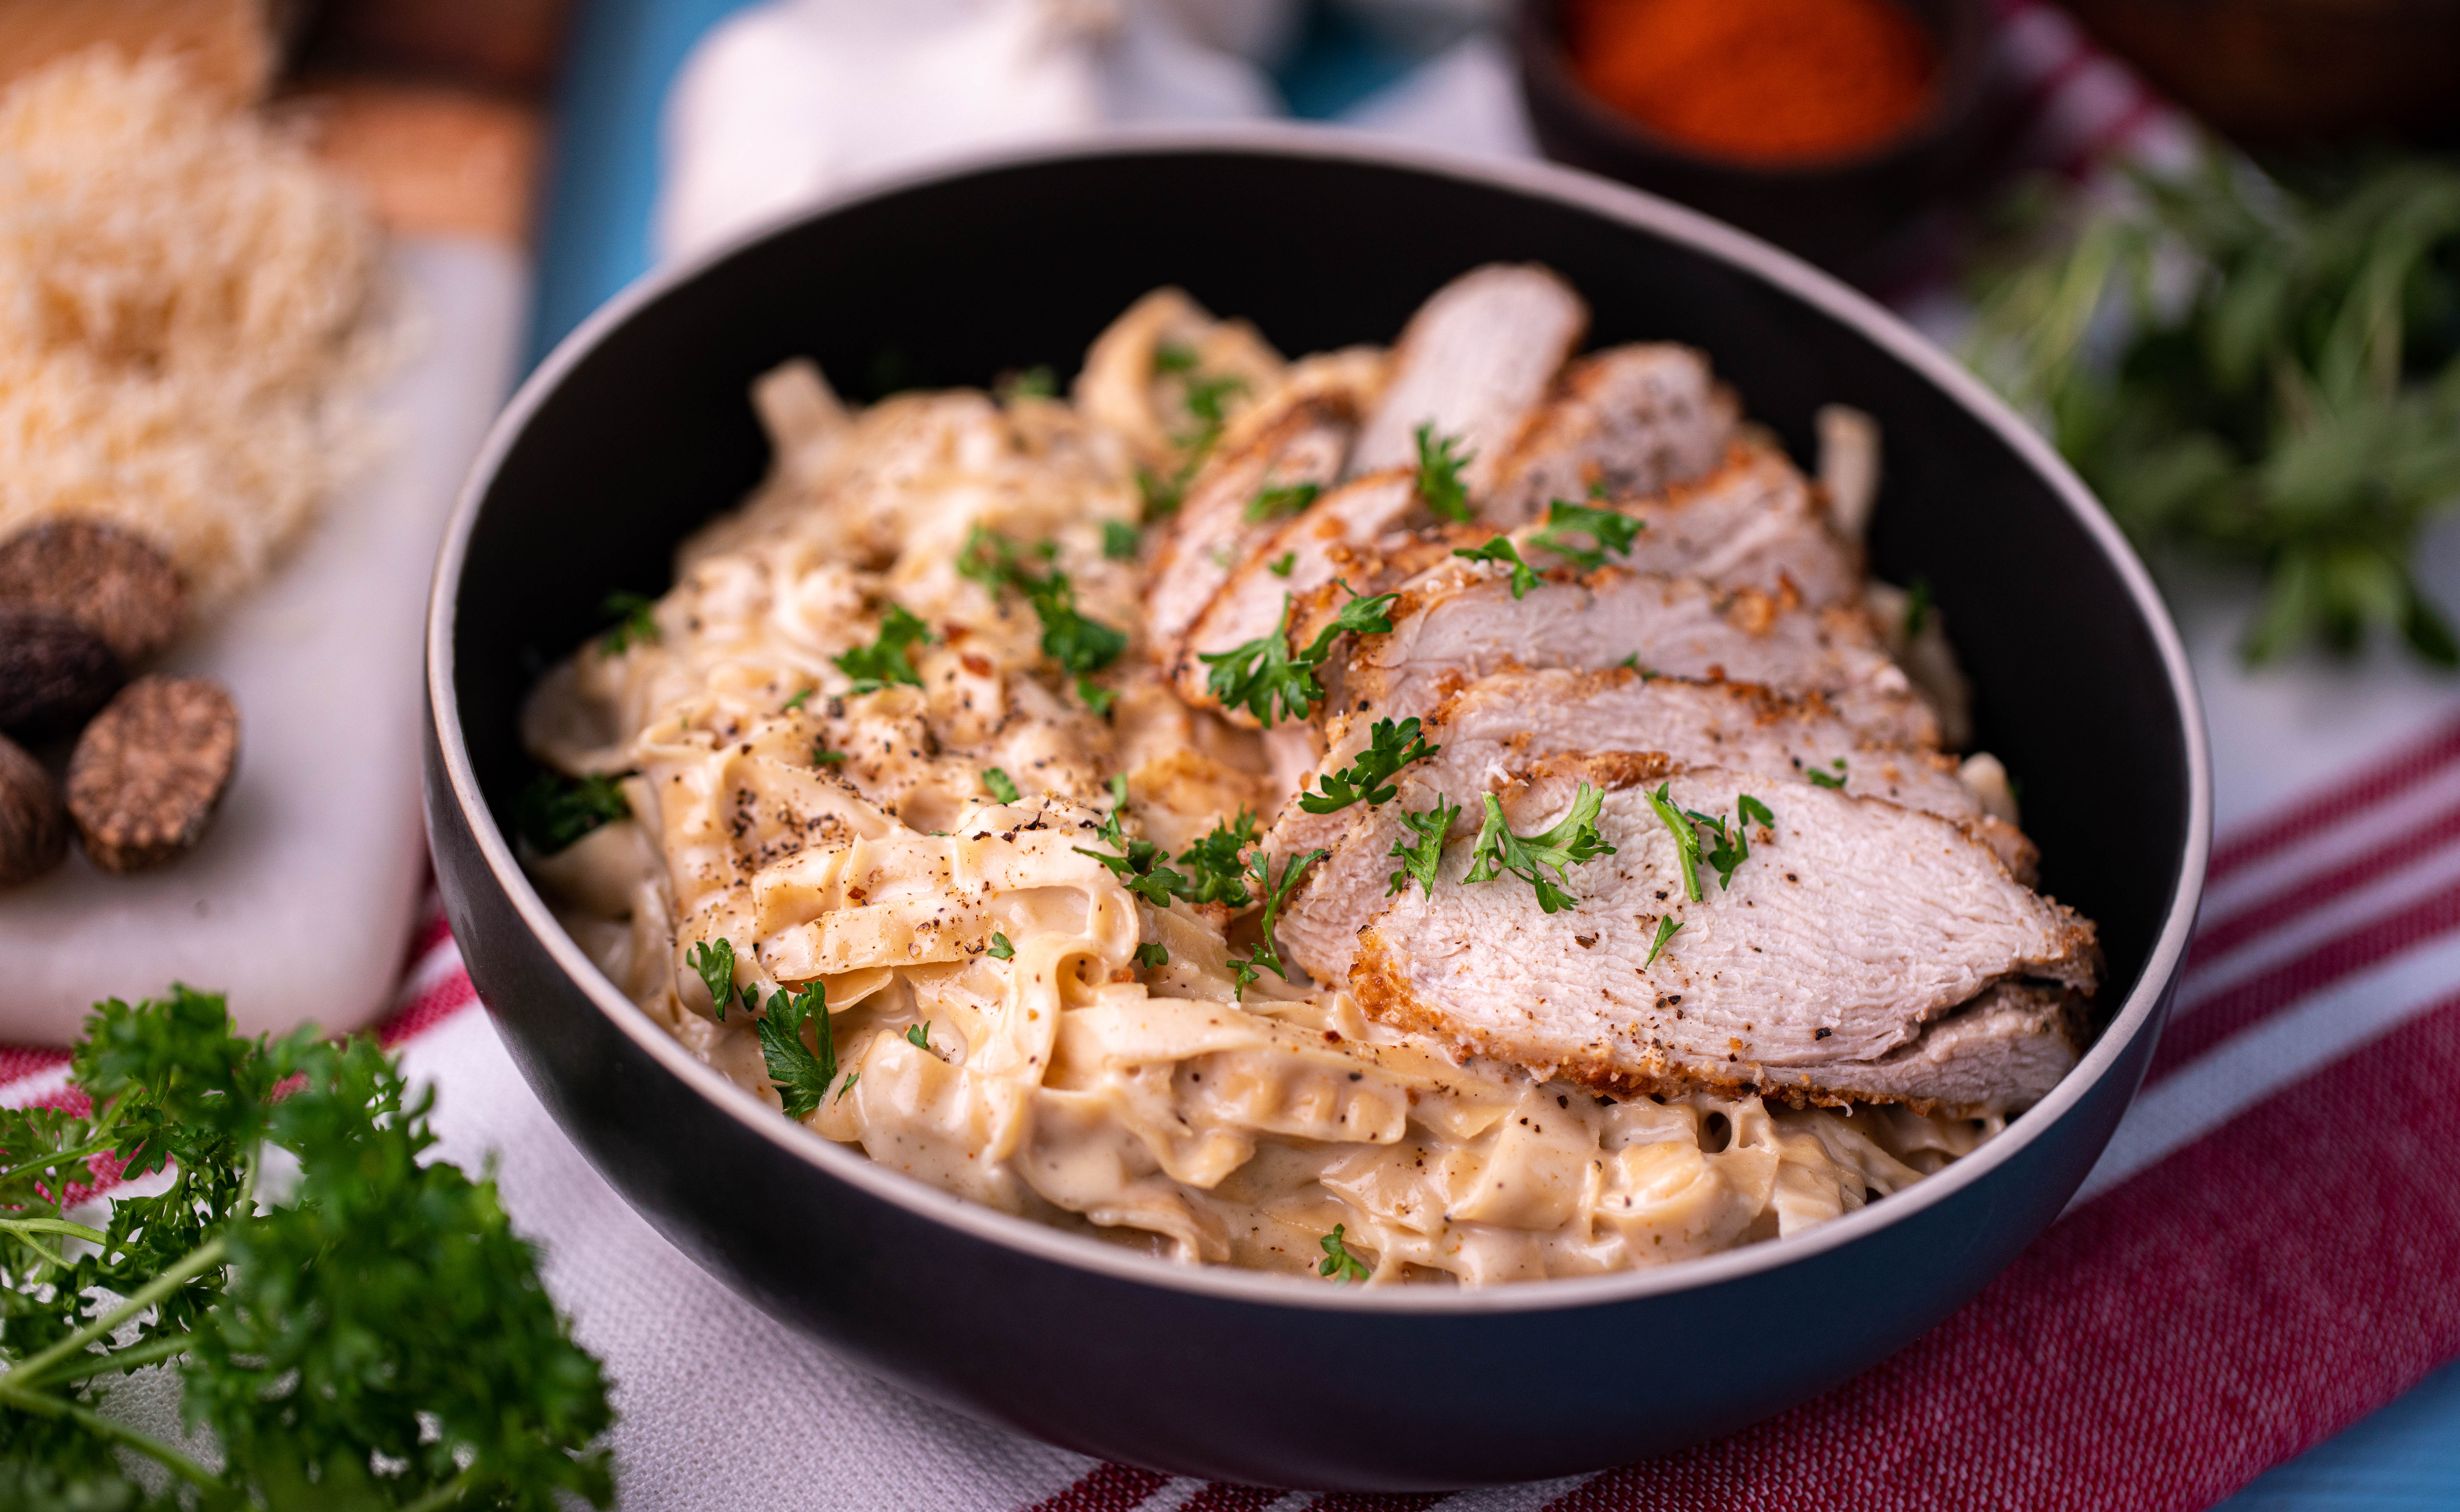 Thumbnail for Low Carb Fettuccine Alfredo with Chicken